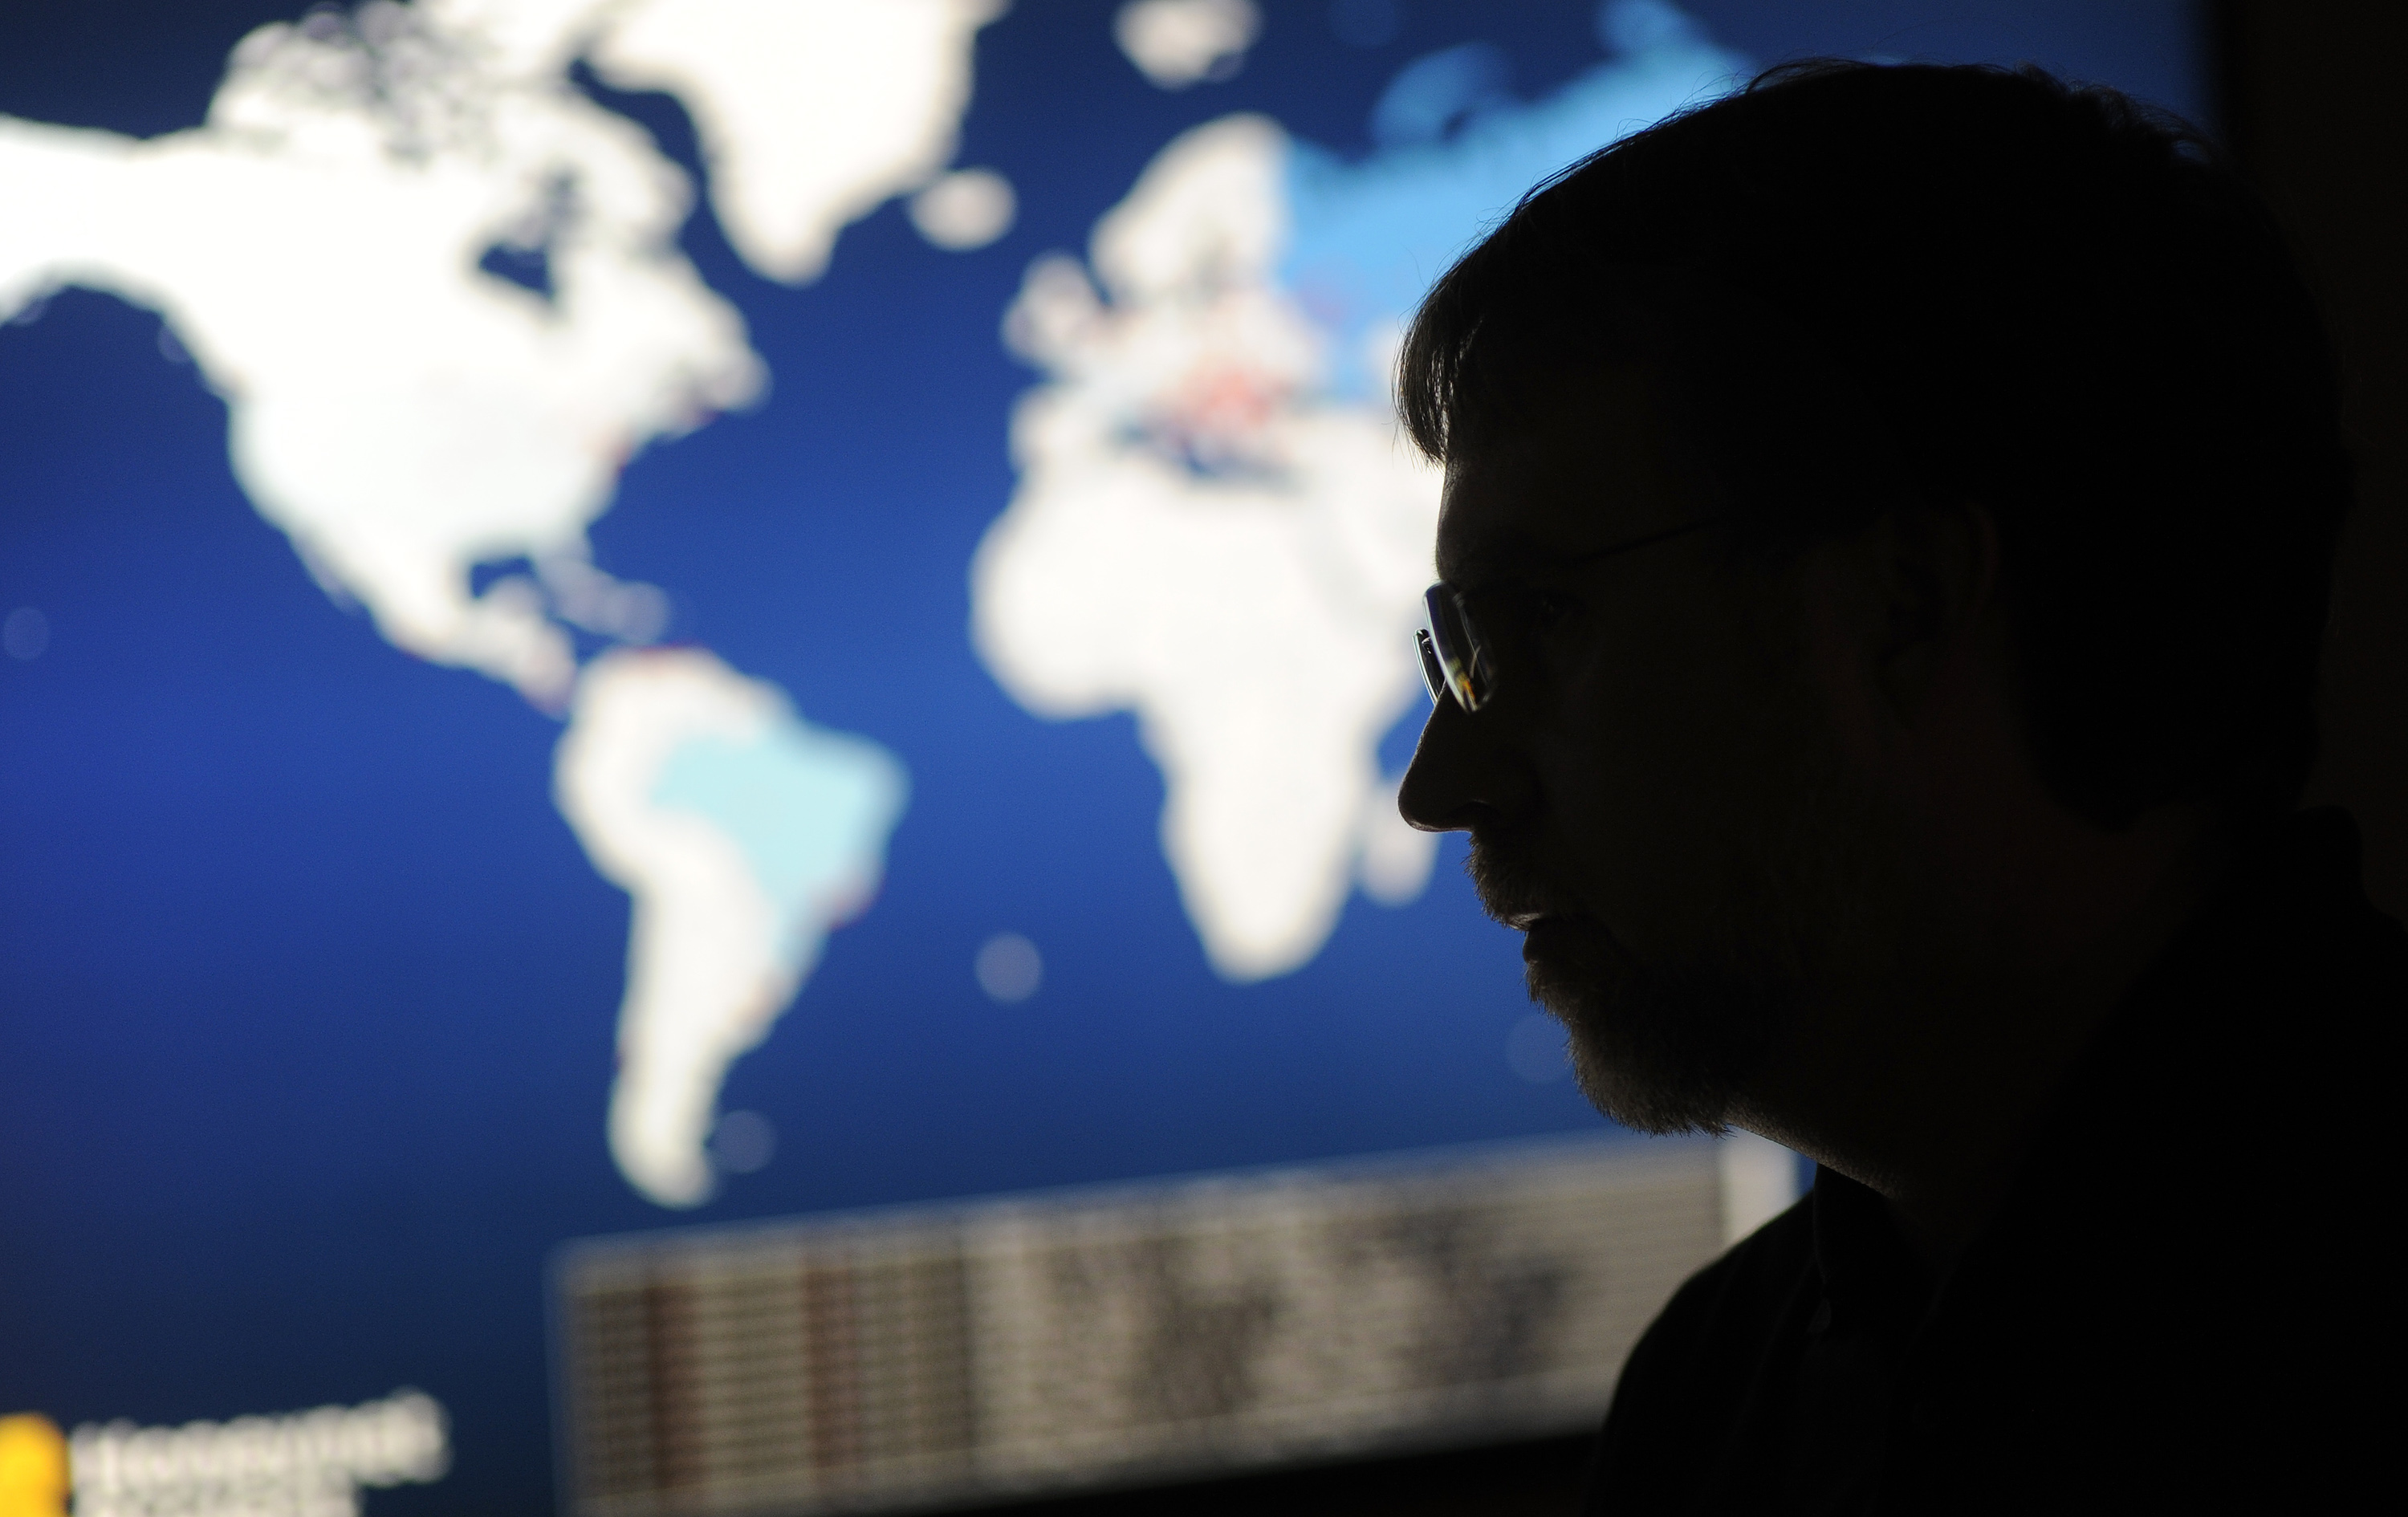 Joe Stewart, director of malware research at Dell SecureWorks, a unit of Dell Inc., speaks to a colleague in front of a pair of large wall mounted monitors in his office in Myrtle Beach, South Carolina, U.S., Friday, Jan. 18, 2013. S